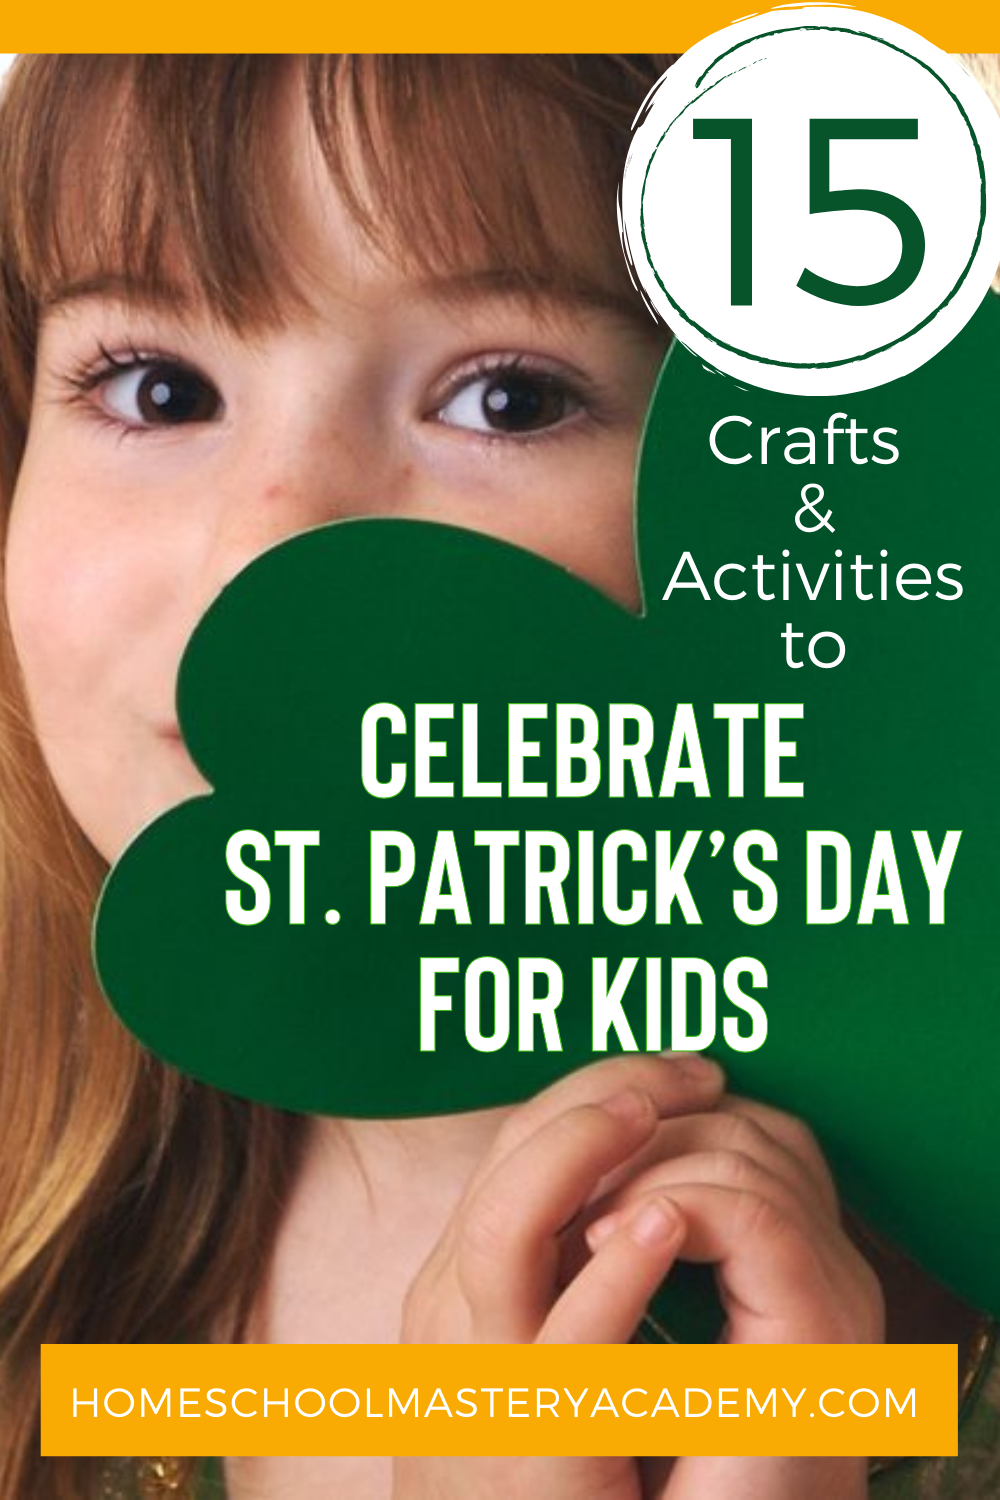 15 Crafts & Activities to Celebrate St. Patrick's Day for Kids. Hands on crafts, printables, and food to learn and have fun!